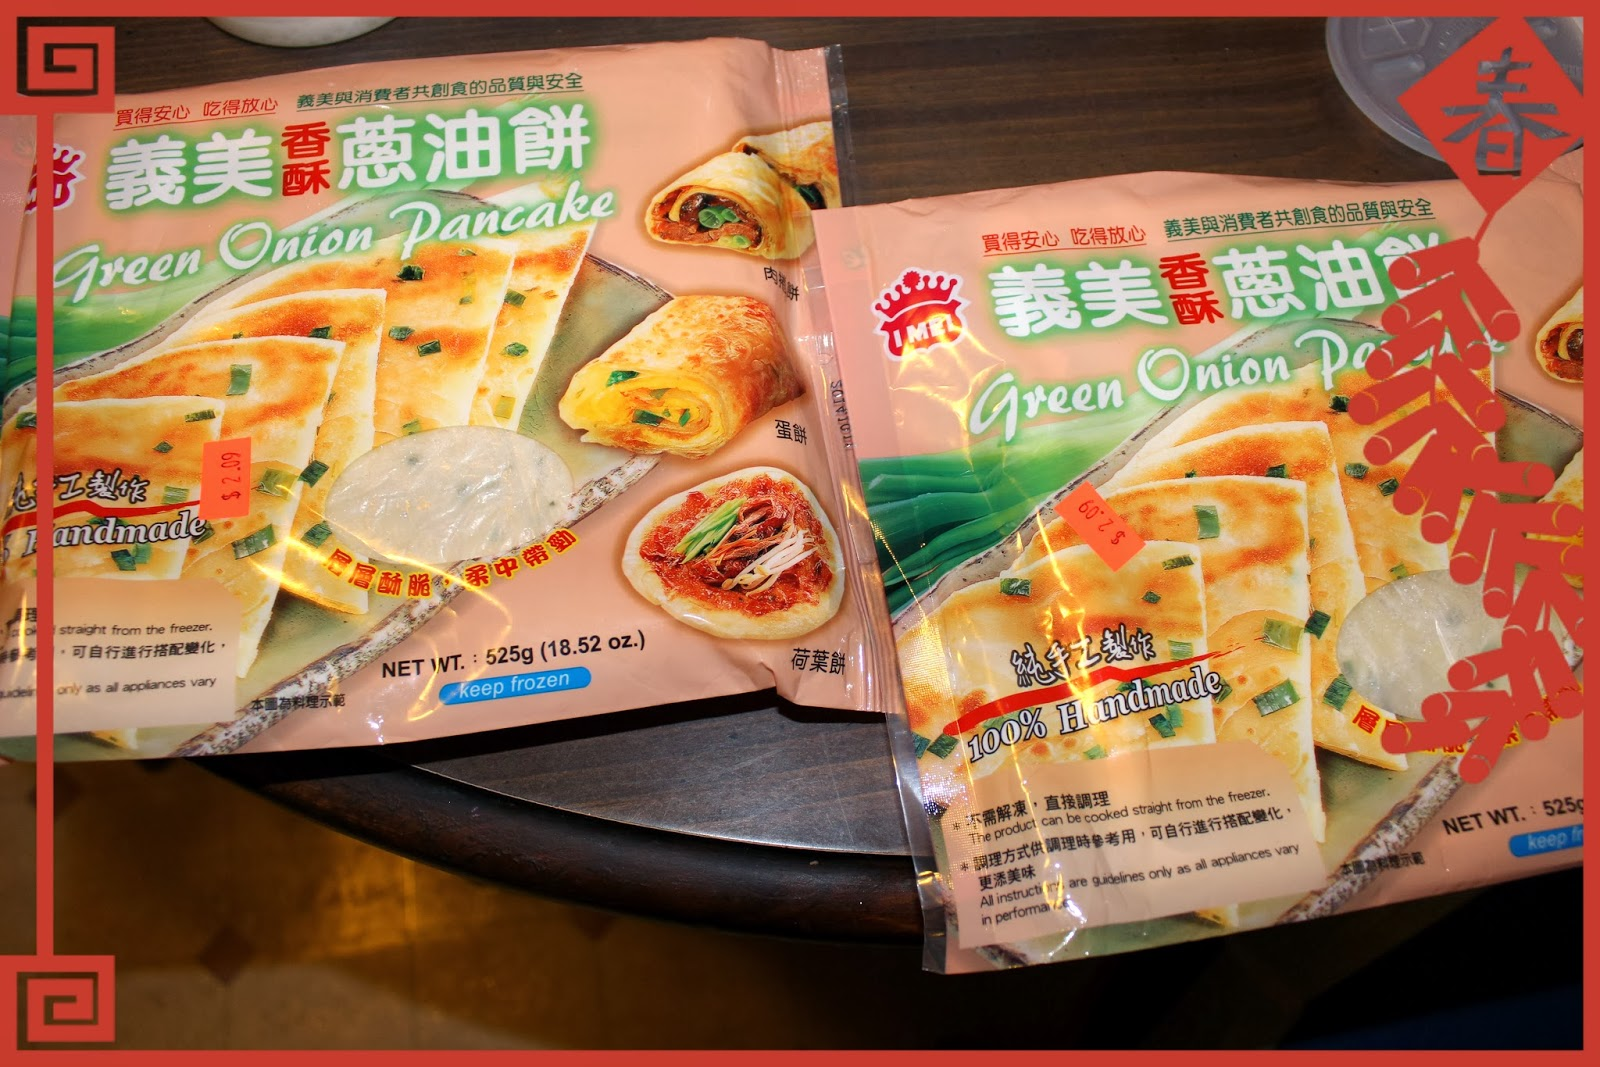 Green Onion Pancake Chinese New Year